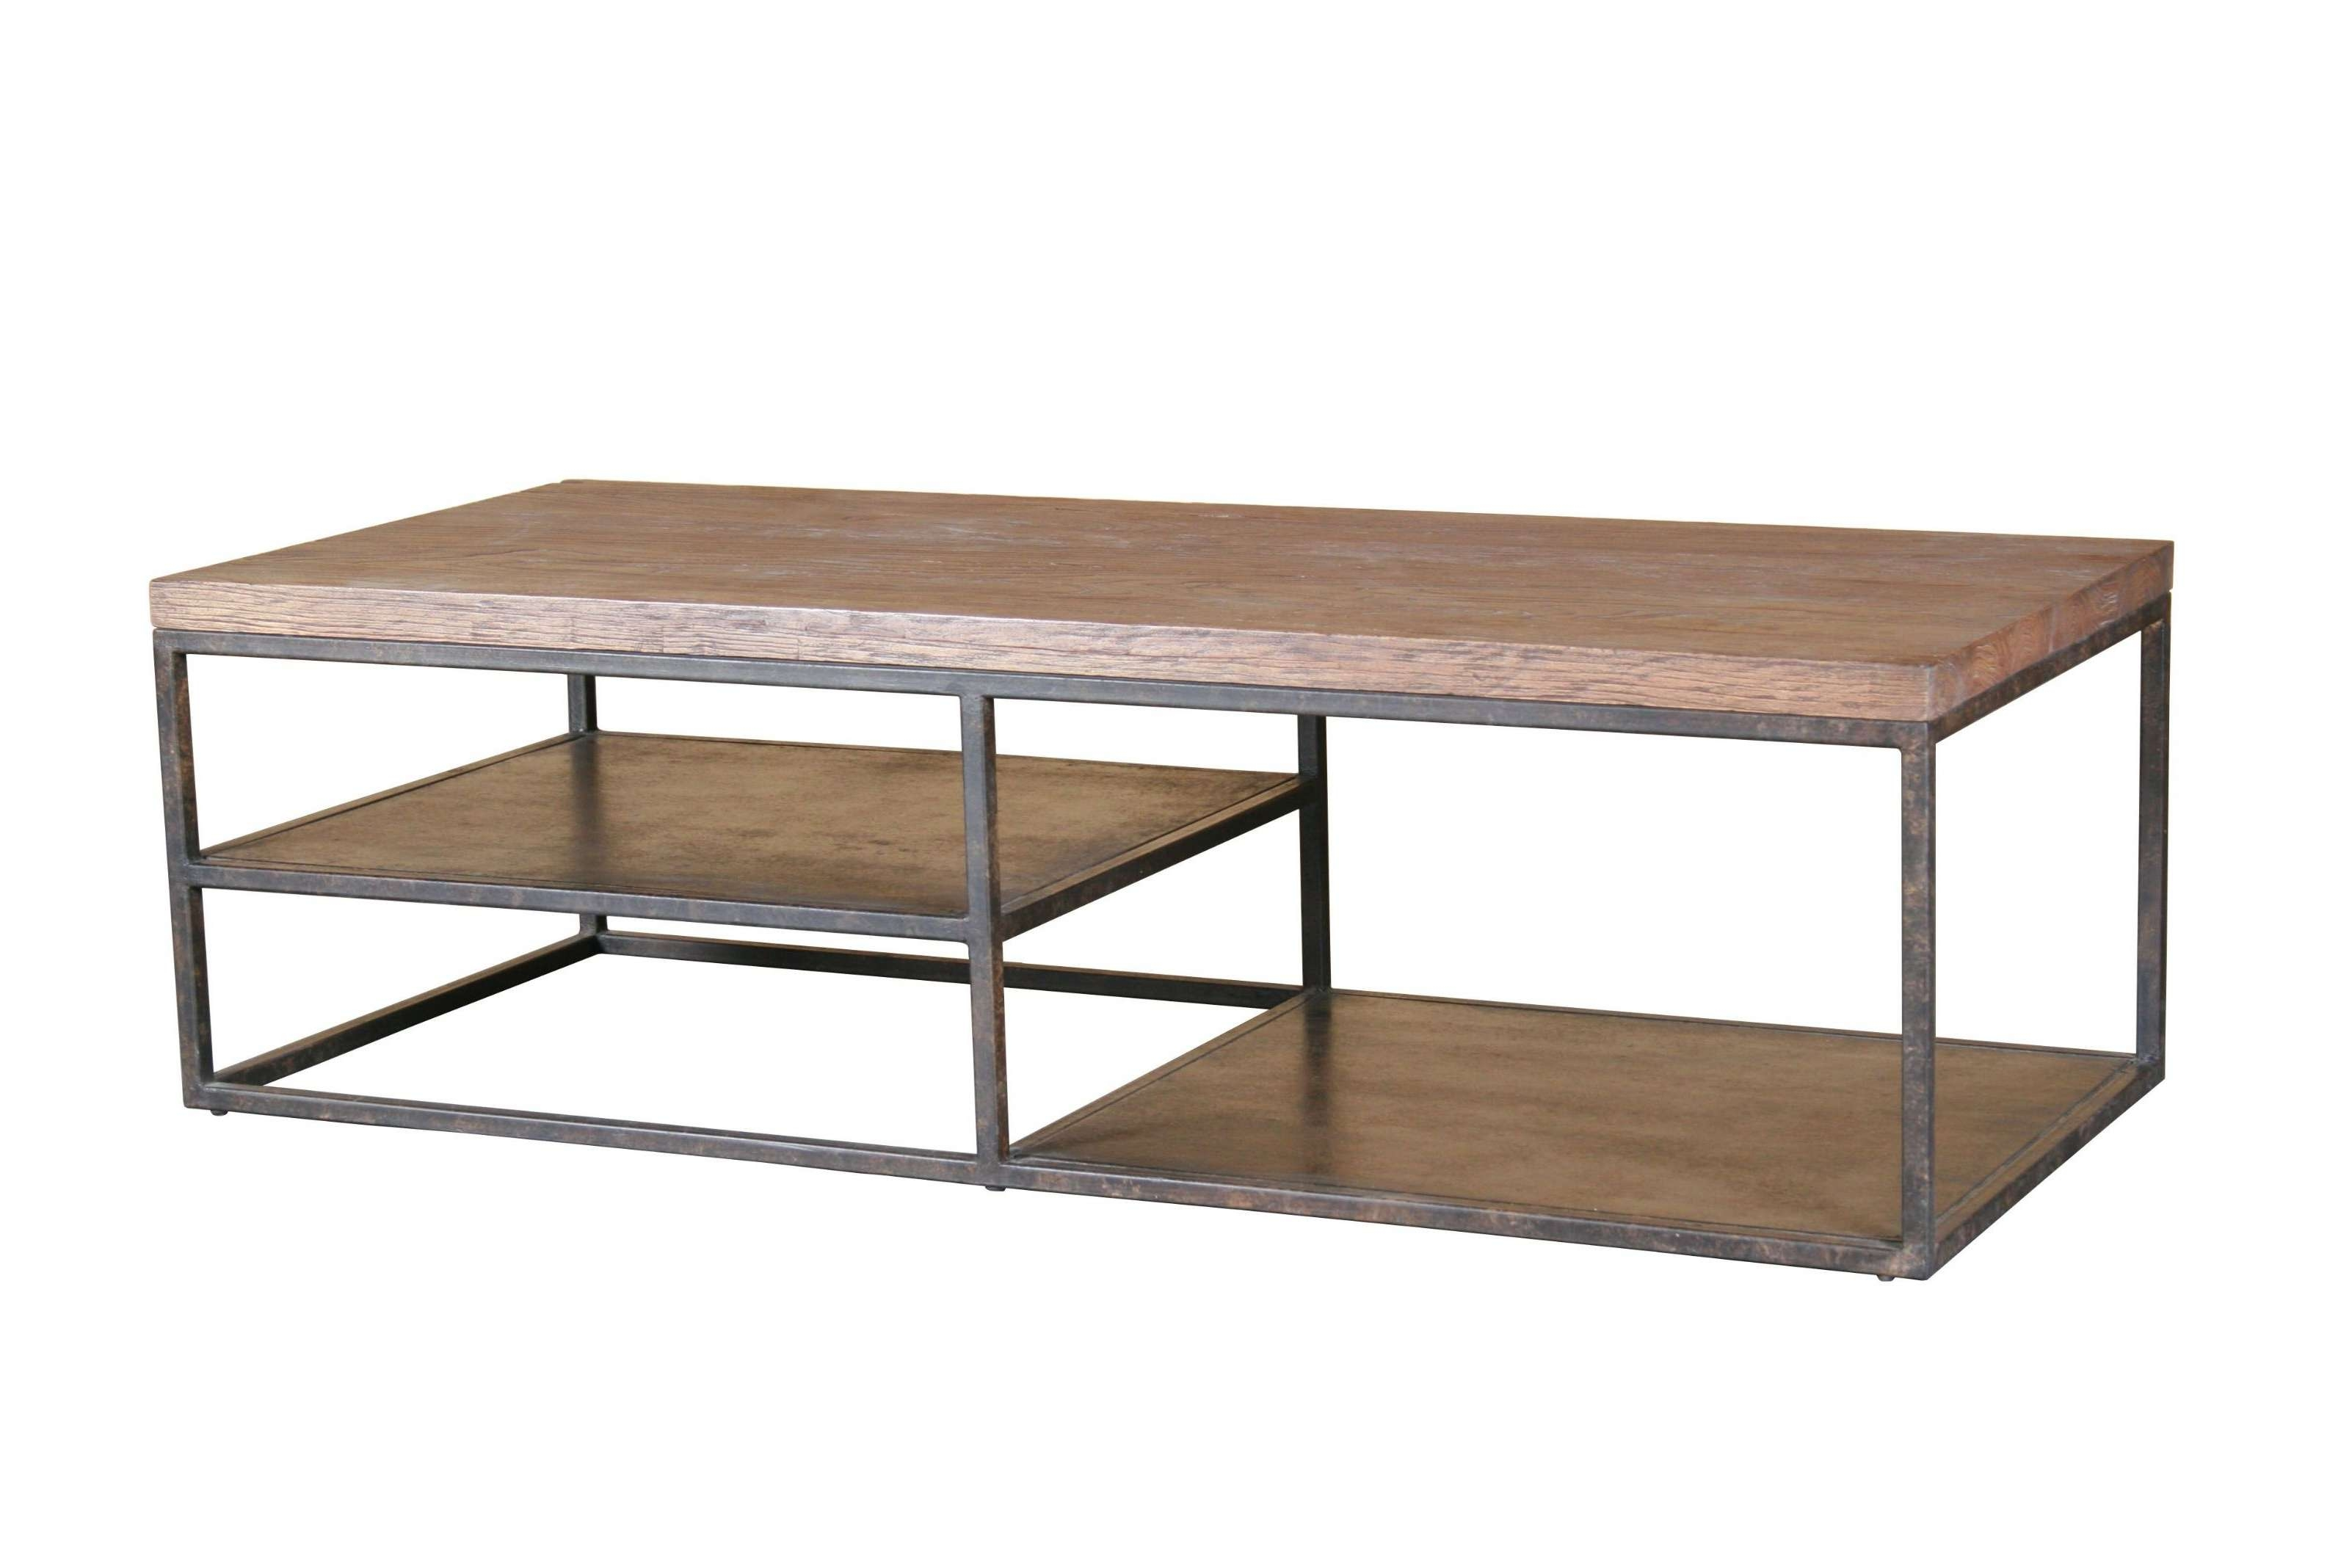 Splendid Good Wood Coffee Table Scandinavian Minimalist Small In Best And Newest Steel And Wood Coffee Tables (View 5 of 20)